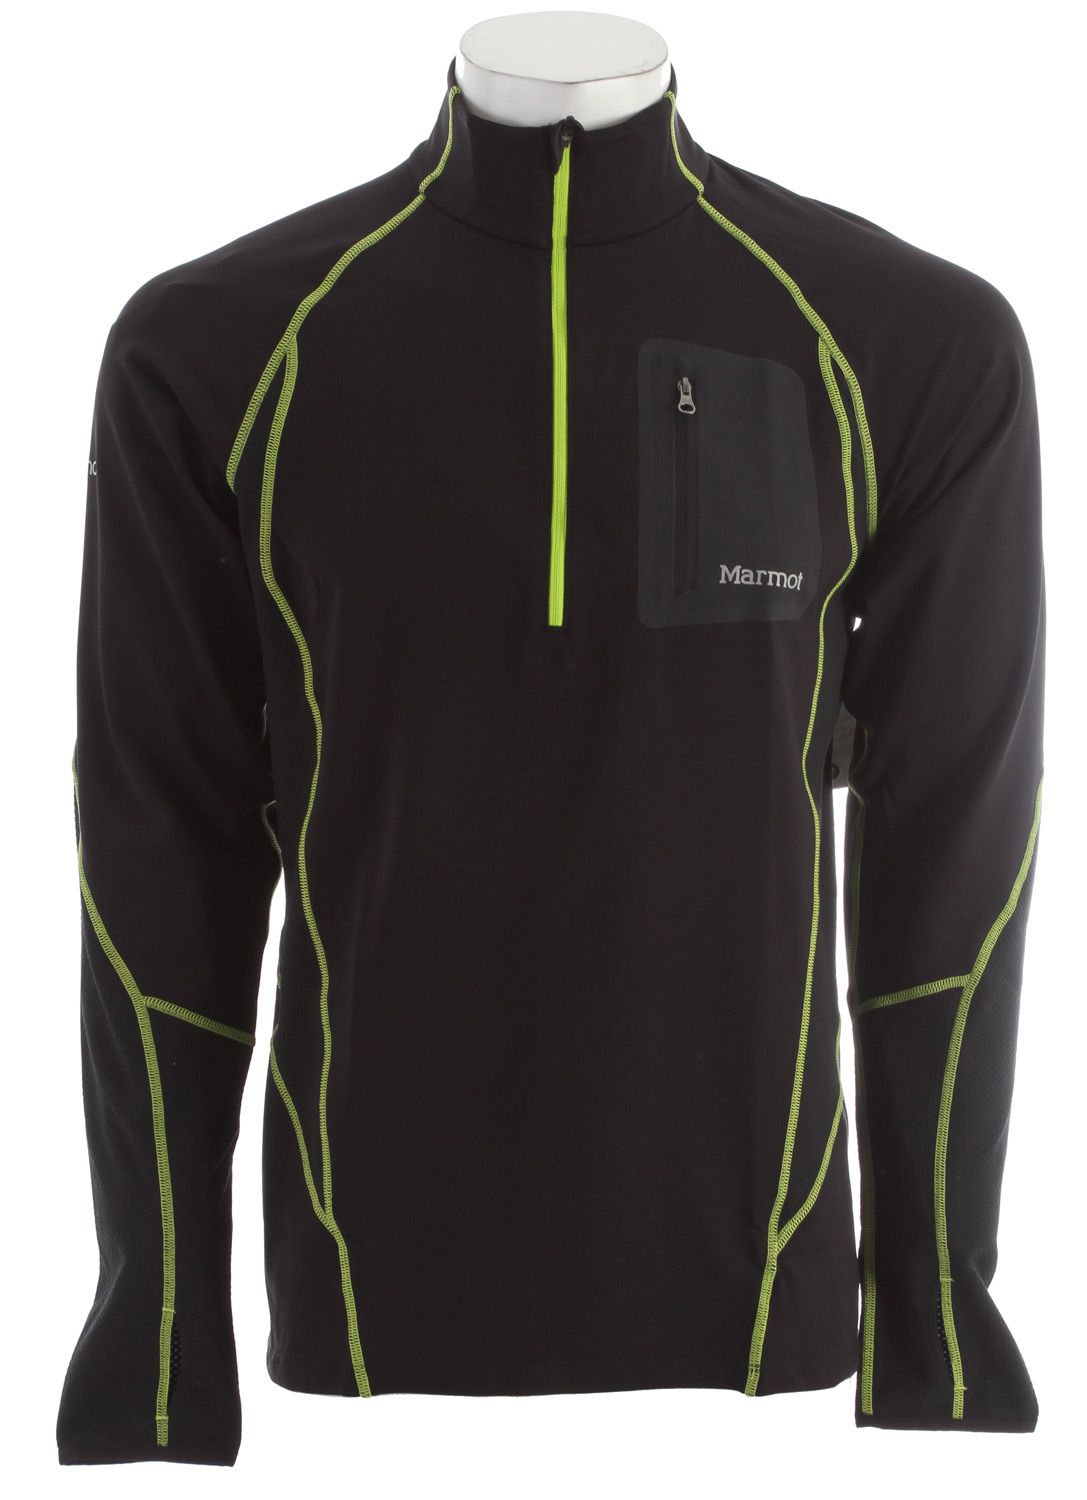 Key Features of the Marmot Helix 1/2 Zip L/S Shirt: Weight 0lbs 10.6oz (300.5g) Materials 57% Nylon, 30% Polyester, 13% Elastane Terry Twill 6.5 oz/yd 100% Polyester Pique 4.2 oz/yd Fit Semi-Fitted Lightweight, Breathable, Soft Performance Knit Fabric Ultraviolet Protection Factor (UPF) 50 Polyester Backing for Wicking and Quick-Drying Nylon for Durability Mesh Panels for Breathability Raglan Sleeve for Increased Range of Motion Flat-Locked Seams for Added Comfort Bonded Zipper Secure Media Pocket Droptail Hem for Increase Coverage Thumbholes Chin Guard Tag-Free Neckline Reflectivity - $62.95